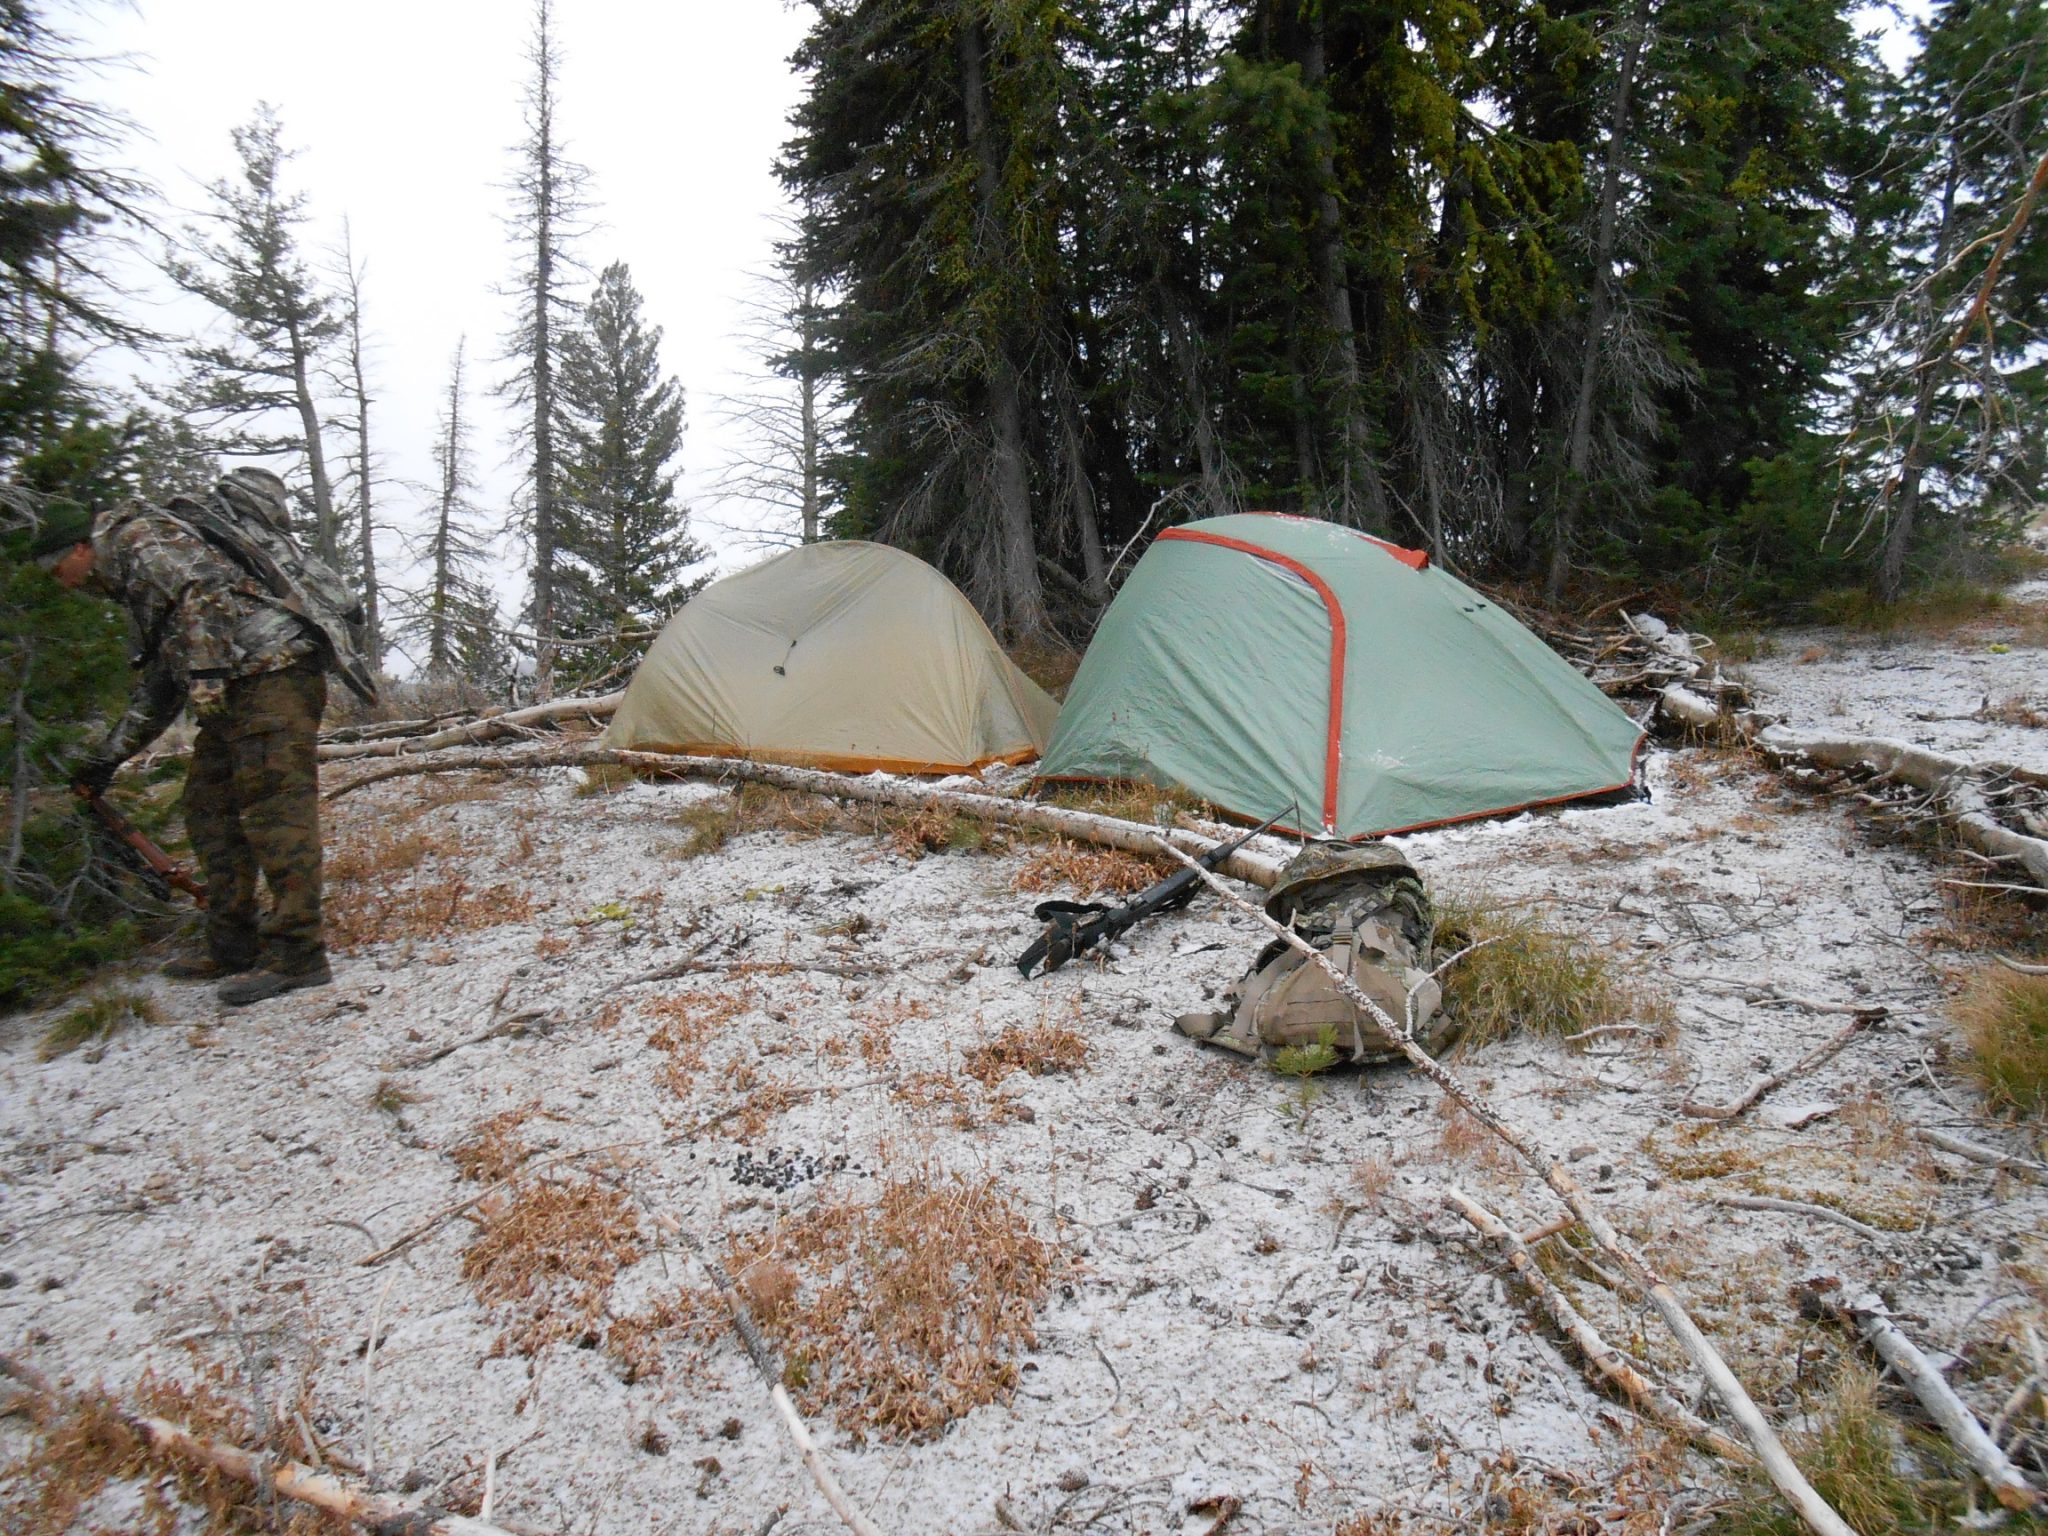 Camp tucked out of view from a high-country basin